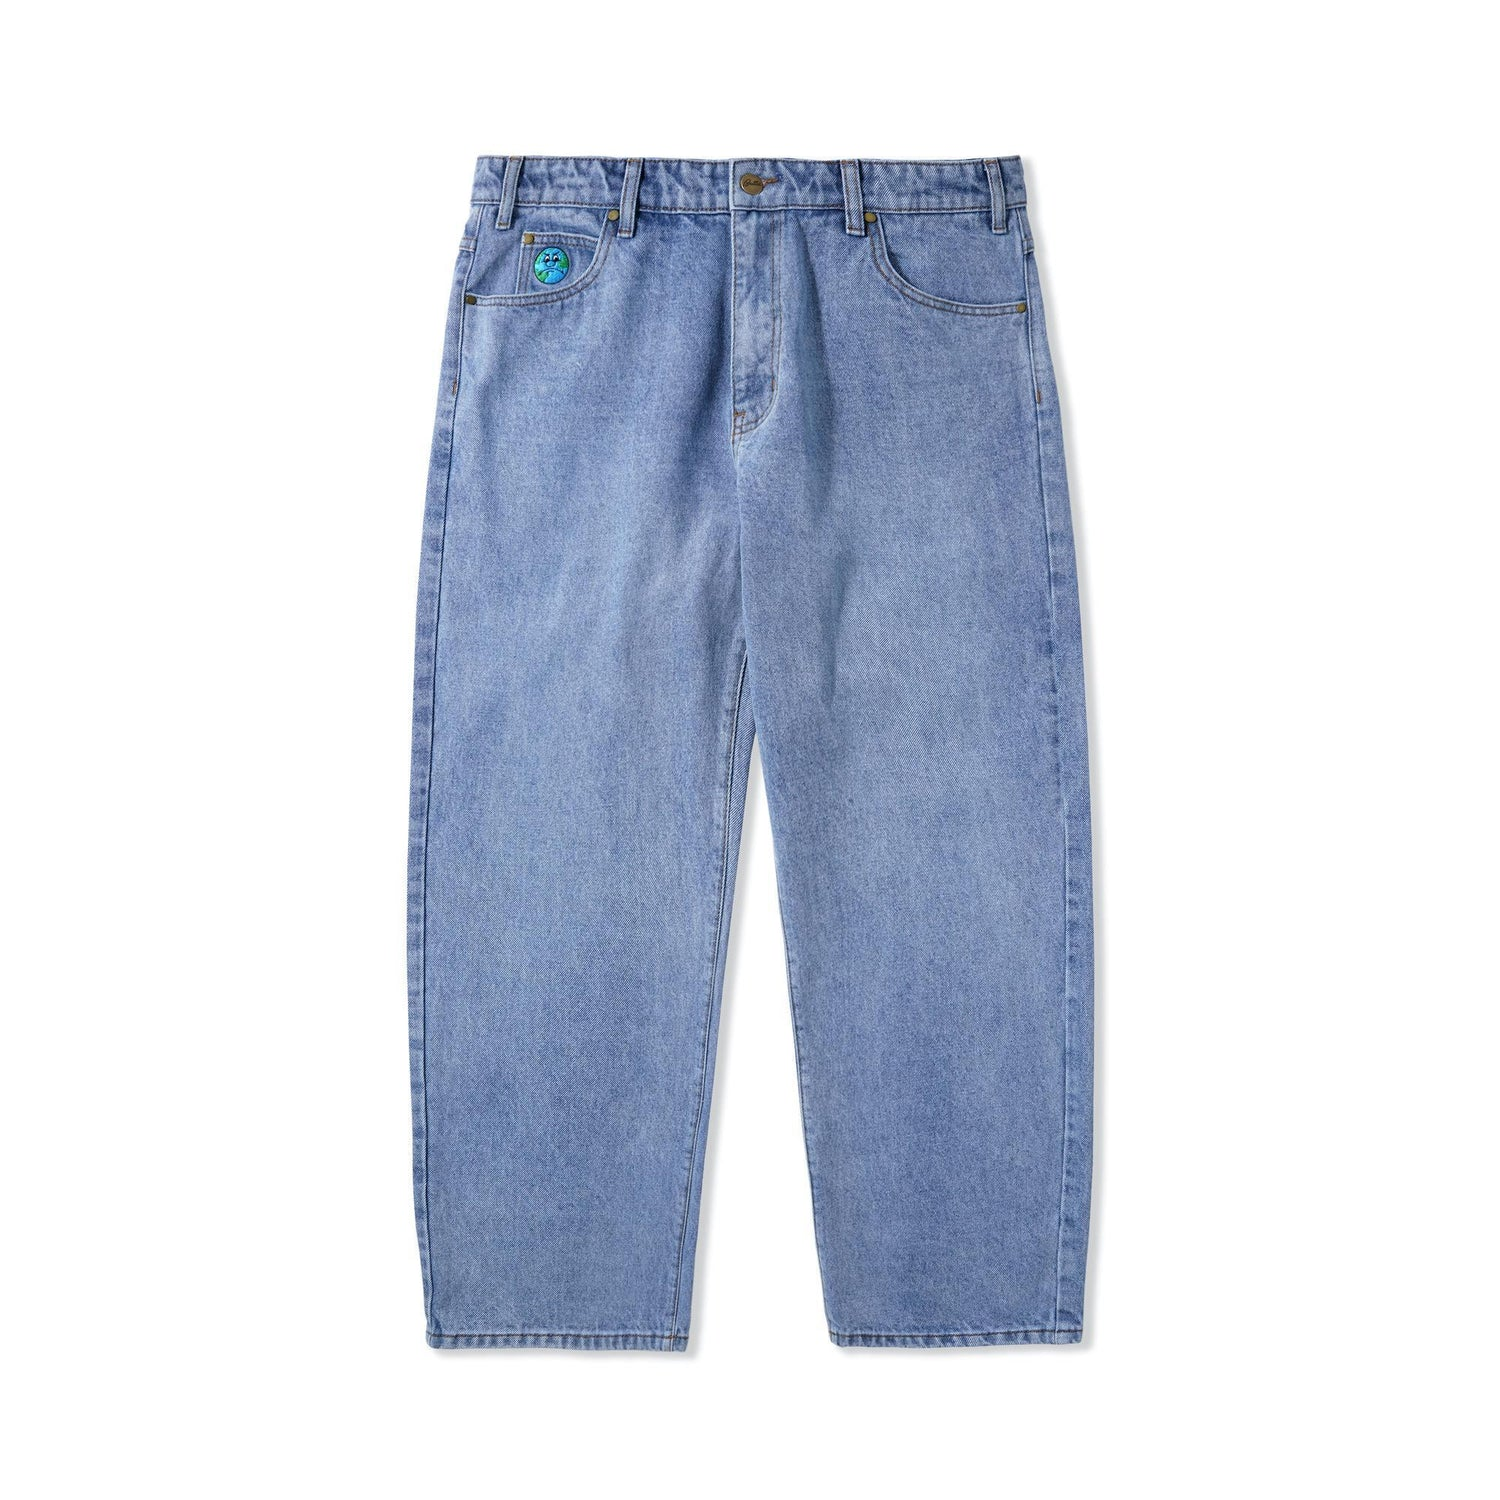 World Denim Pants, Light Blue